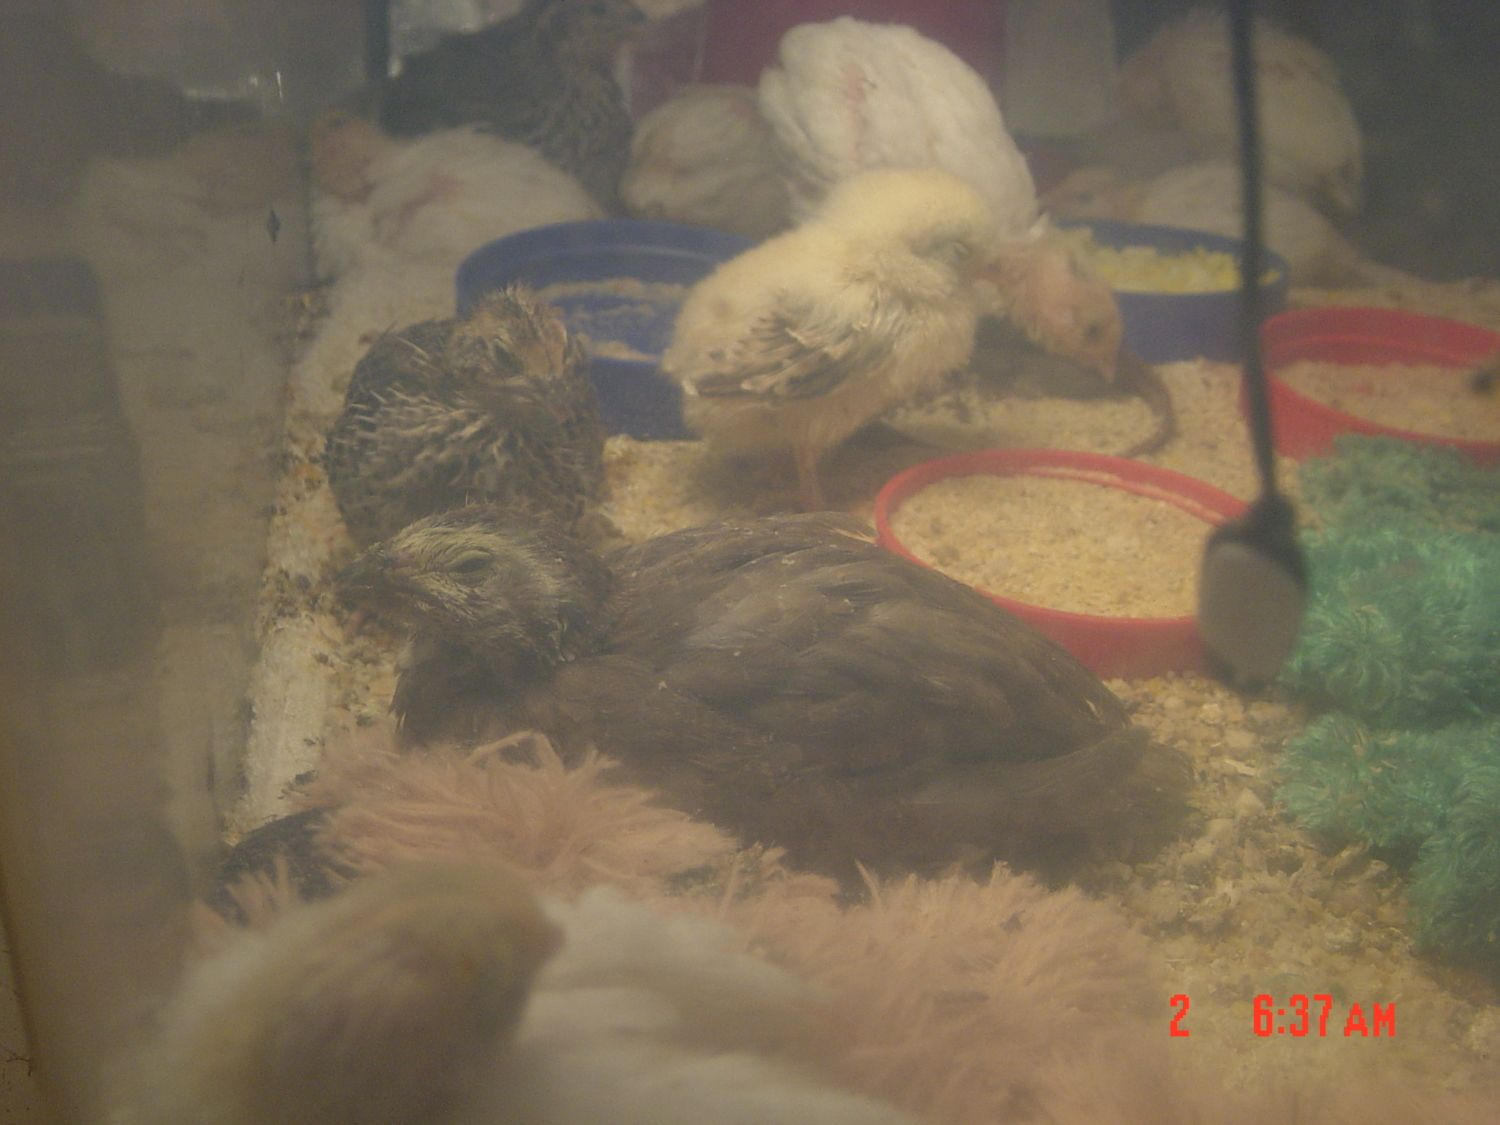 Lobzi's photos in Unusual (to me) looking coturnix quail from mix color breeding